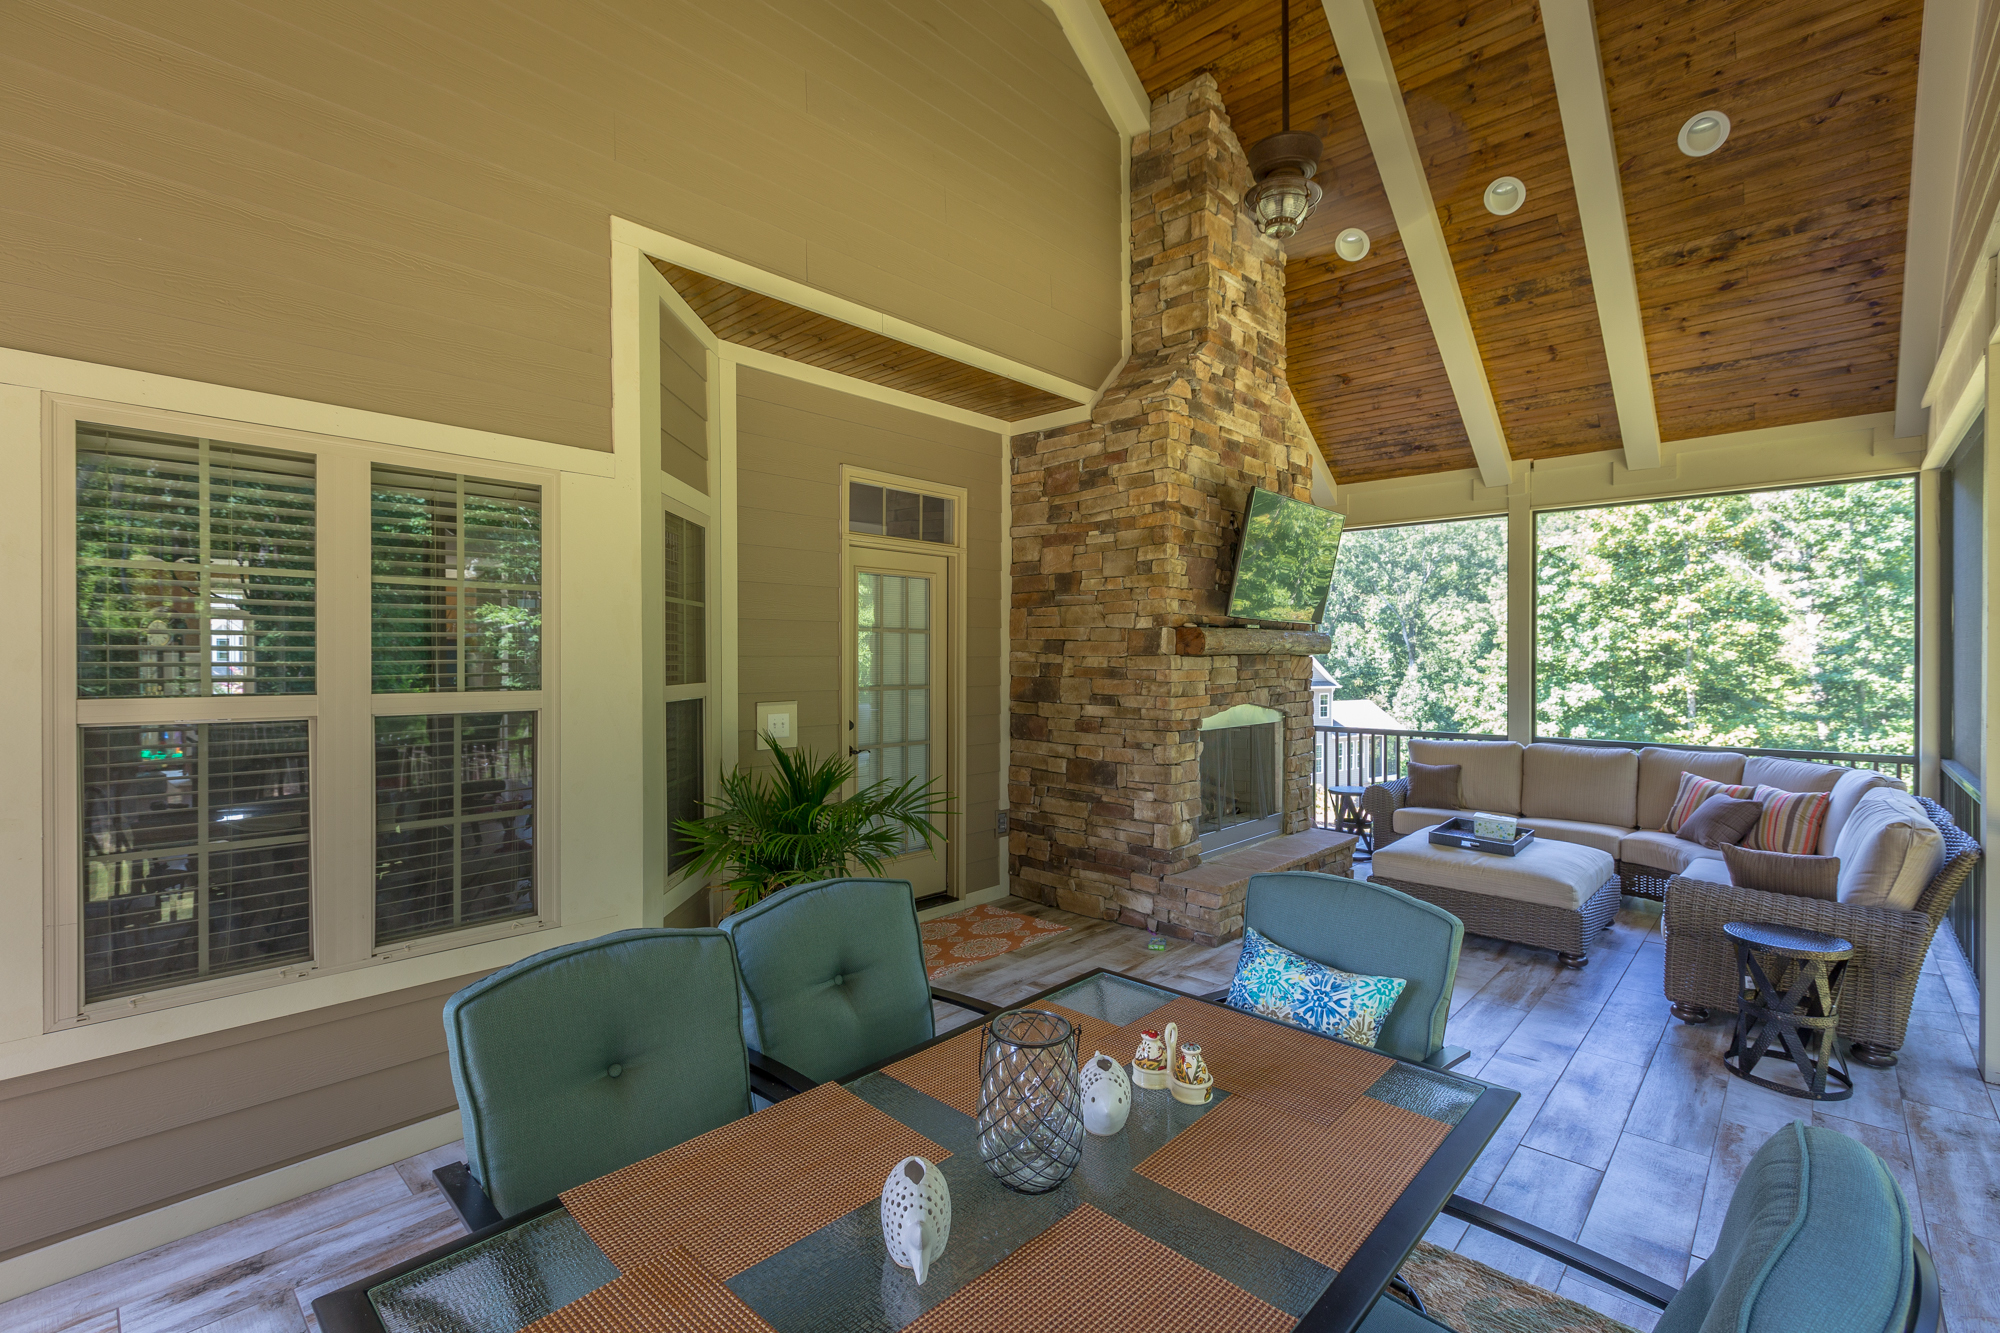 Interior exterior painting services chattanooga tn - Interior designers in chattanooga tn ...